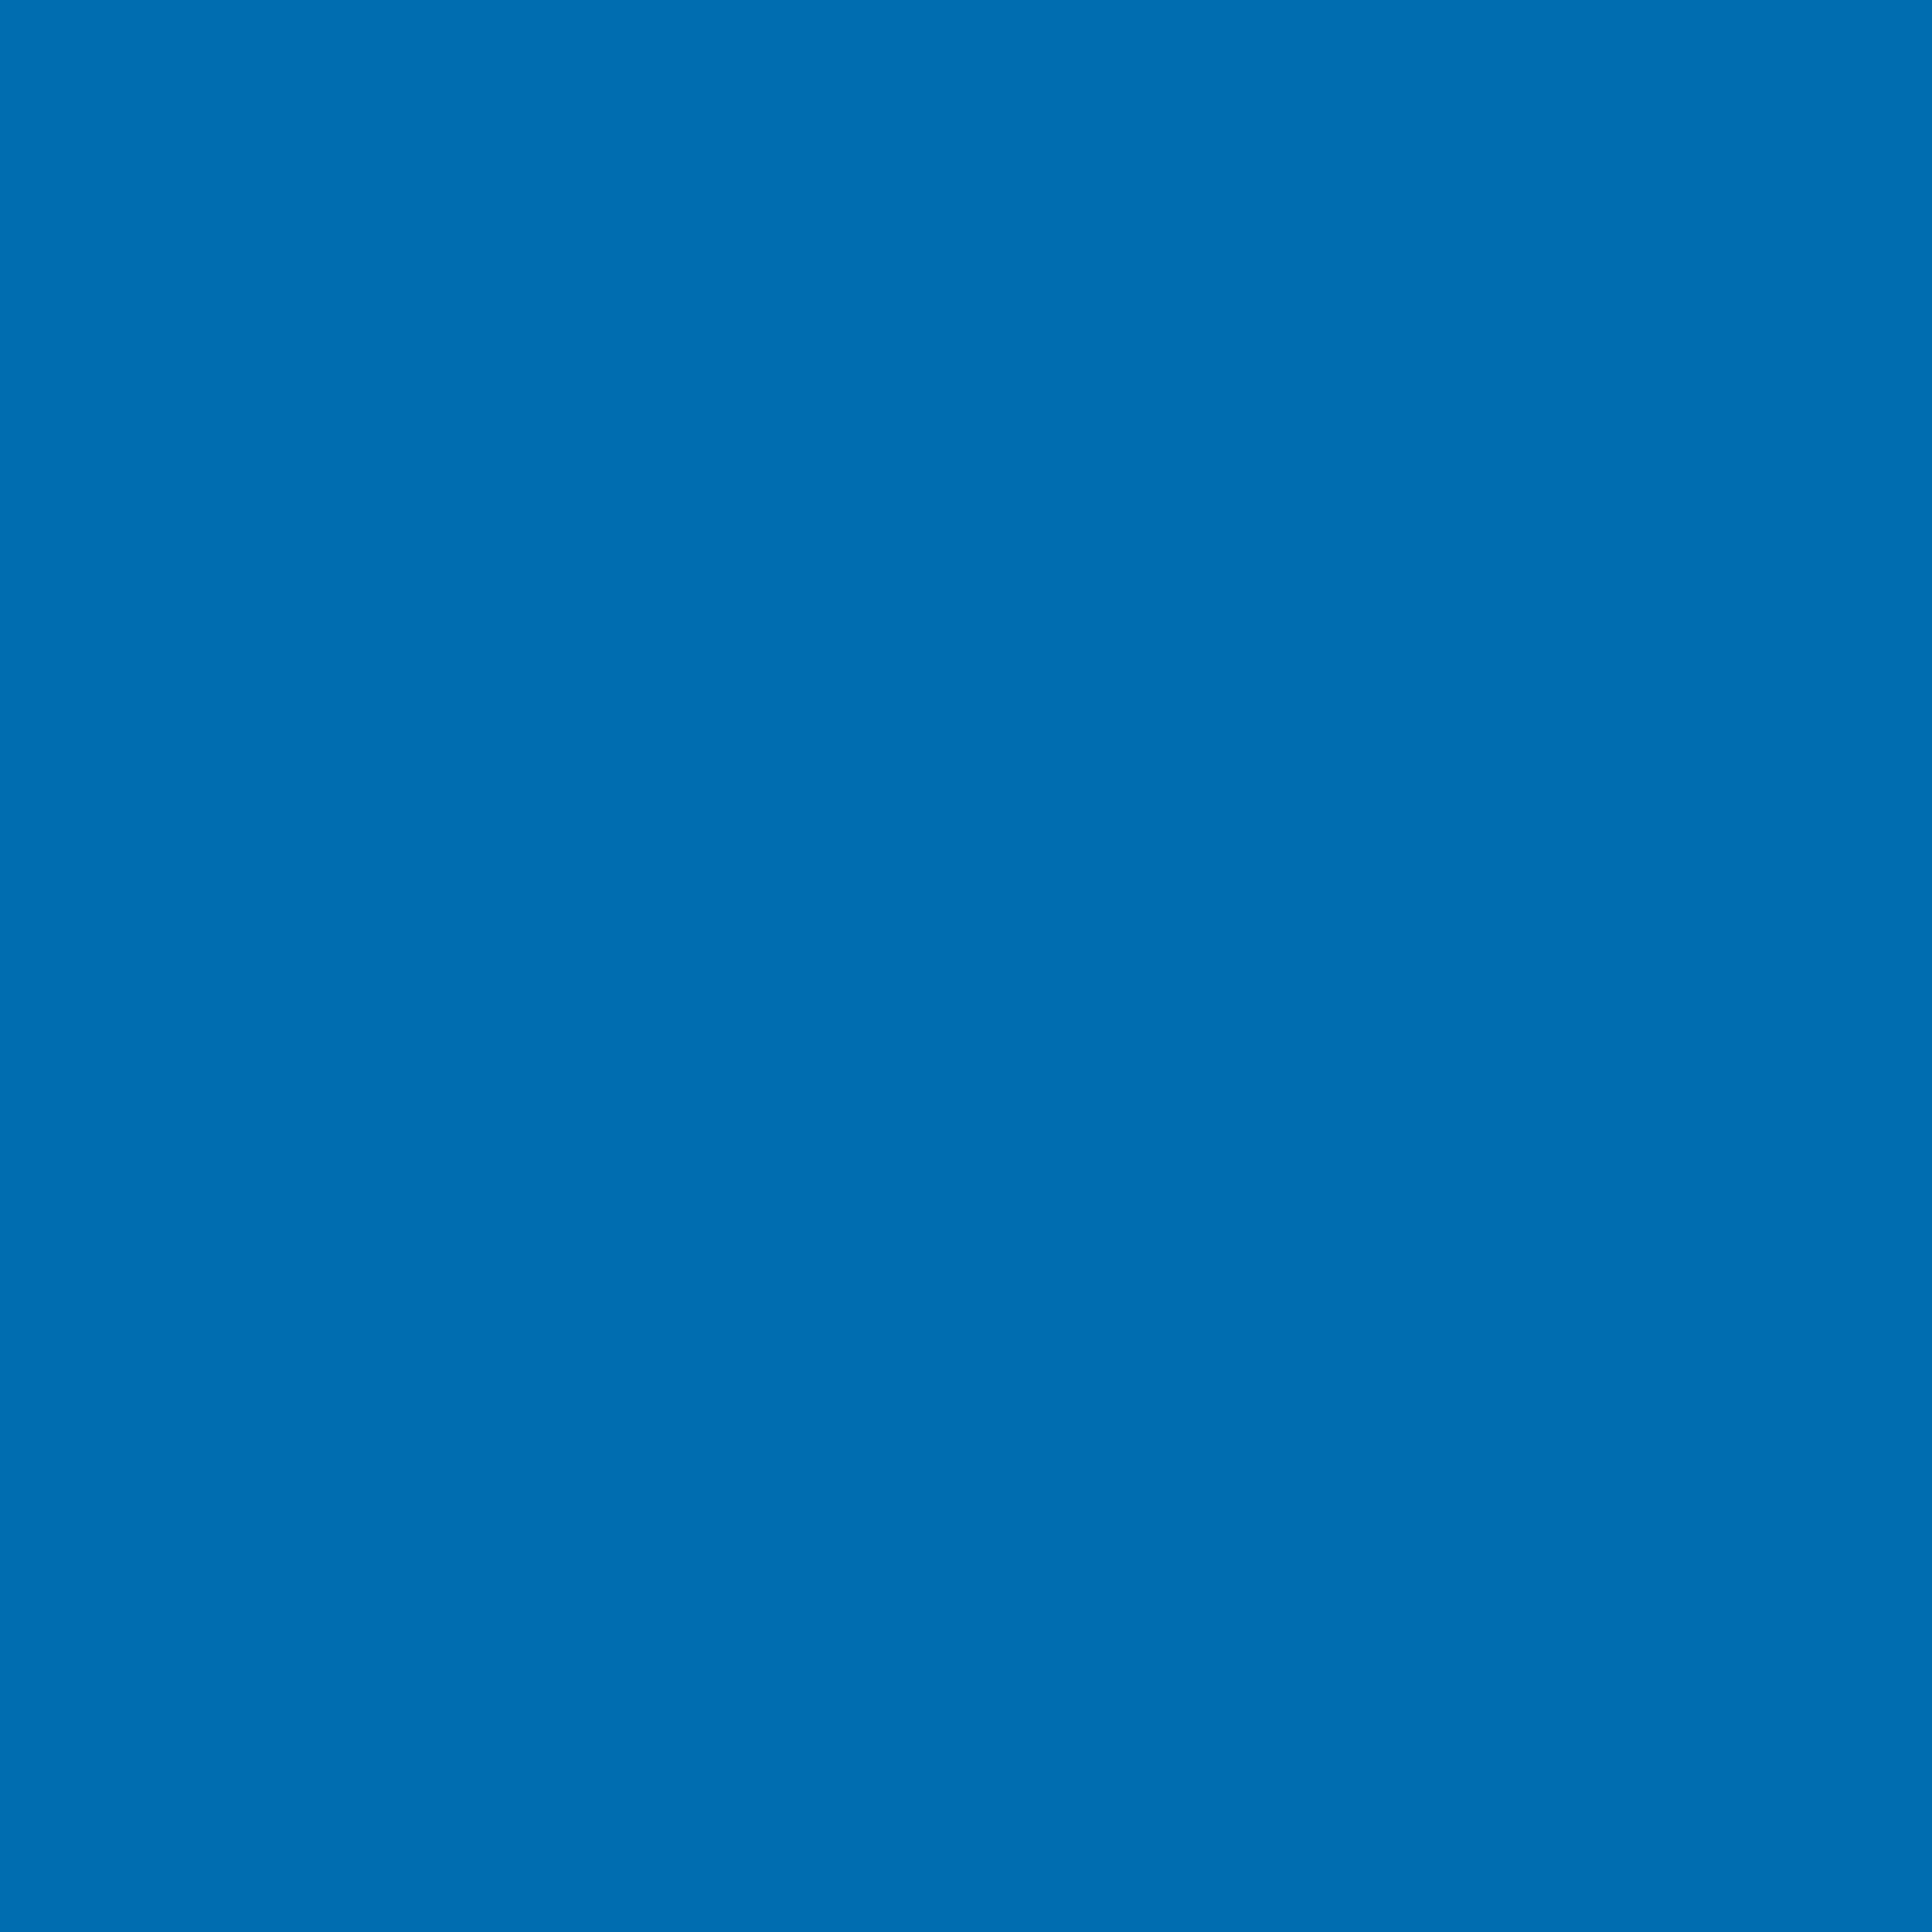 2732x2732 Honolulu Blue Solid Color Background